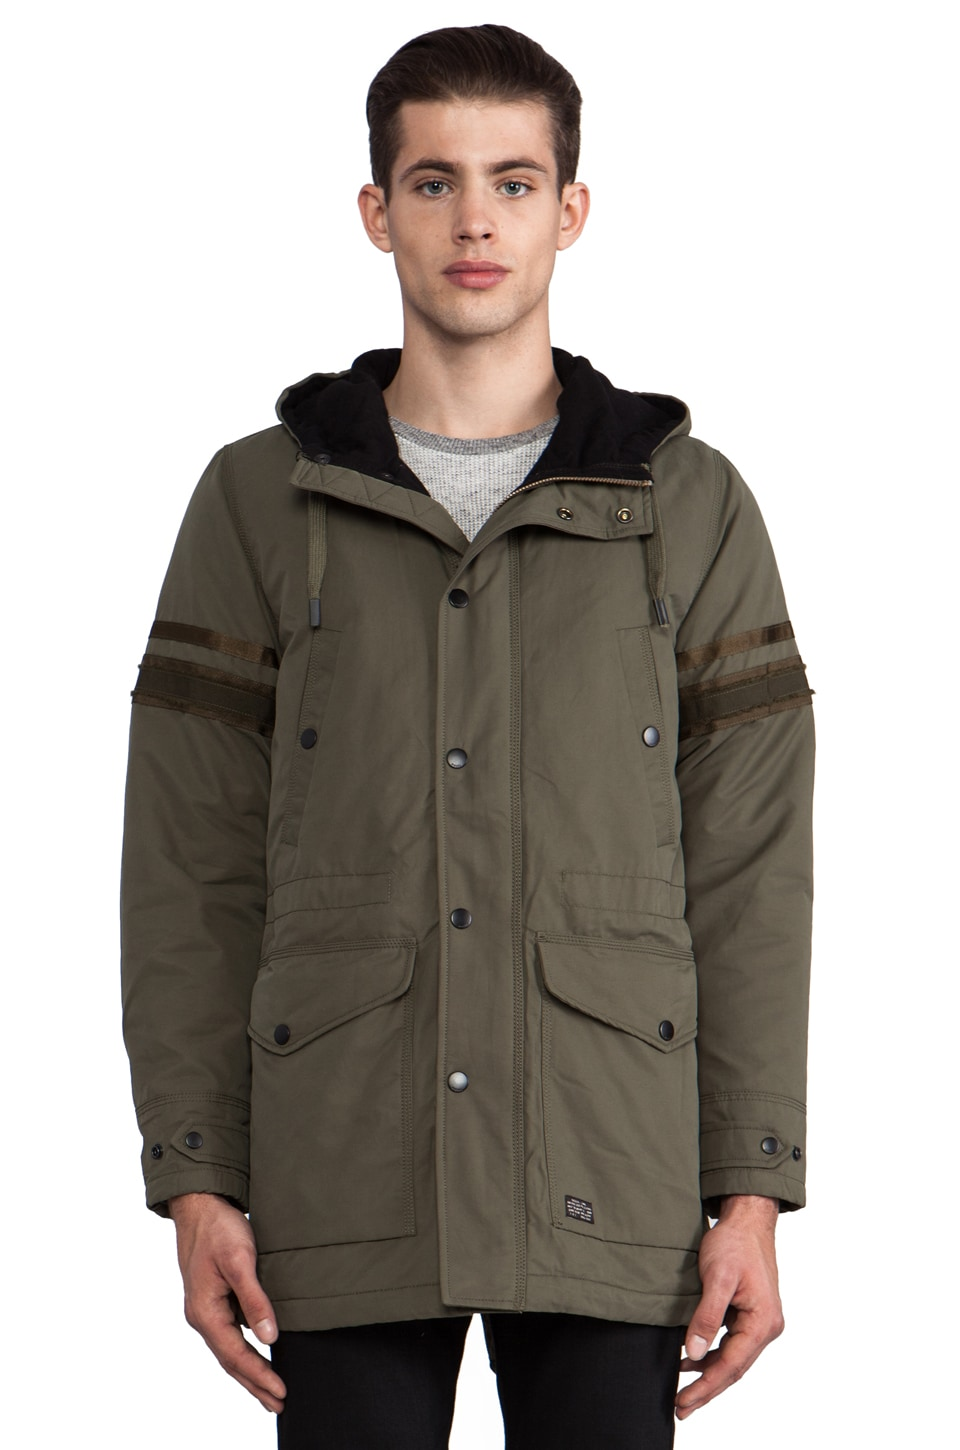 Diesel Eranthe Military Jacket in Dark Olive